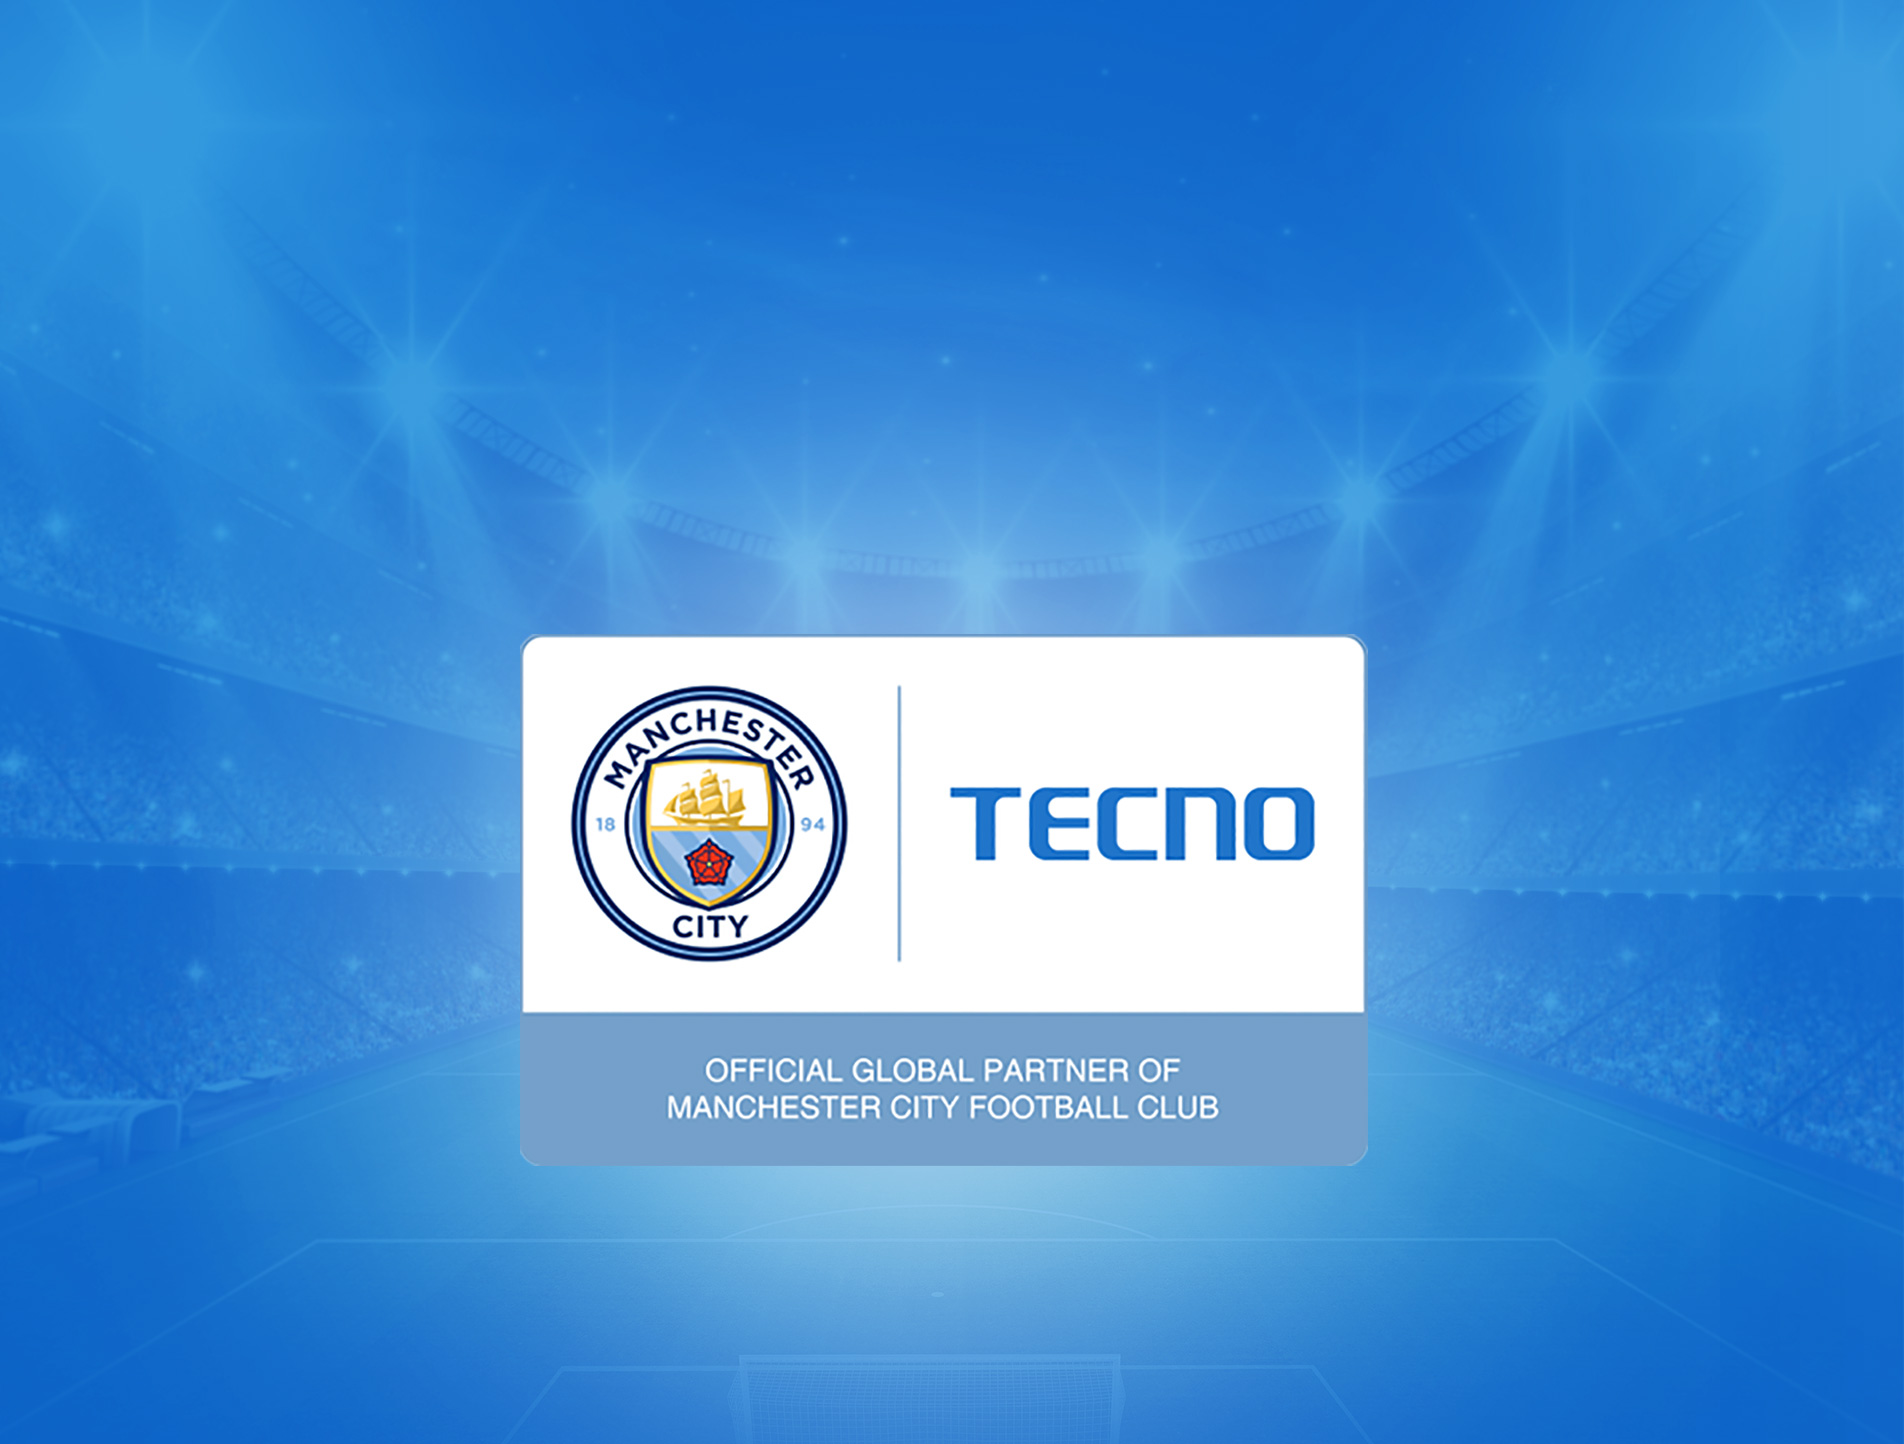 TECNO Global Partner of Manchester City Football Club